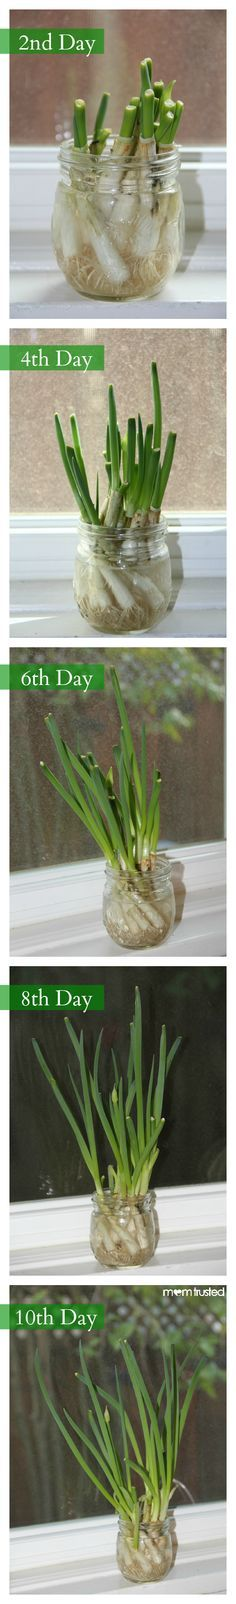 Grow green onions in only 10 days!  Great gardening project for kids.